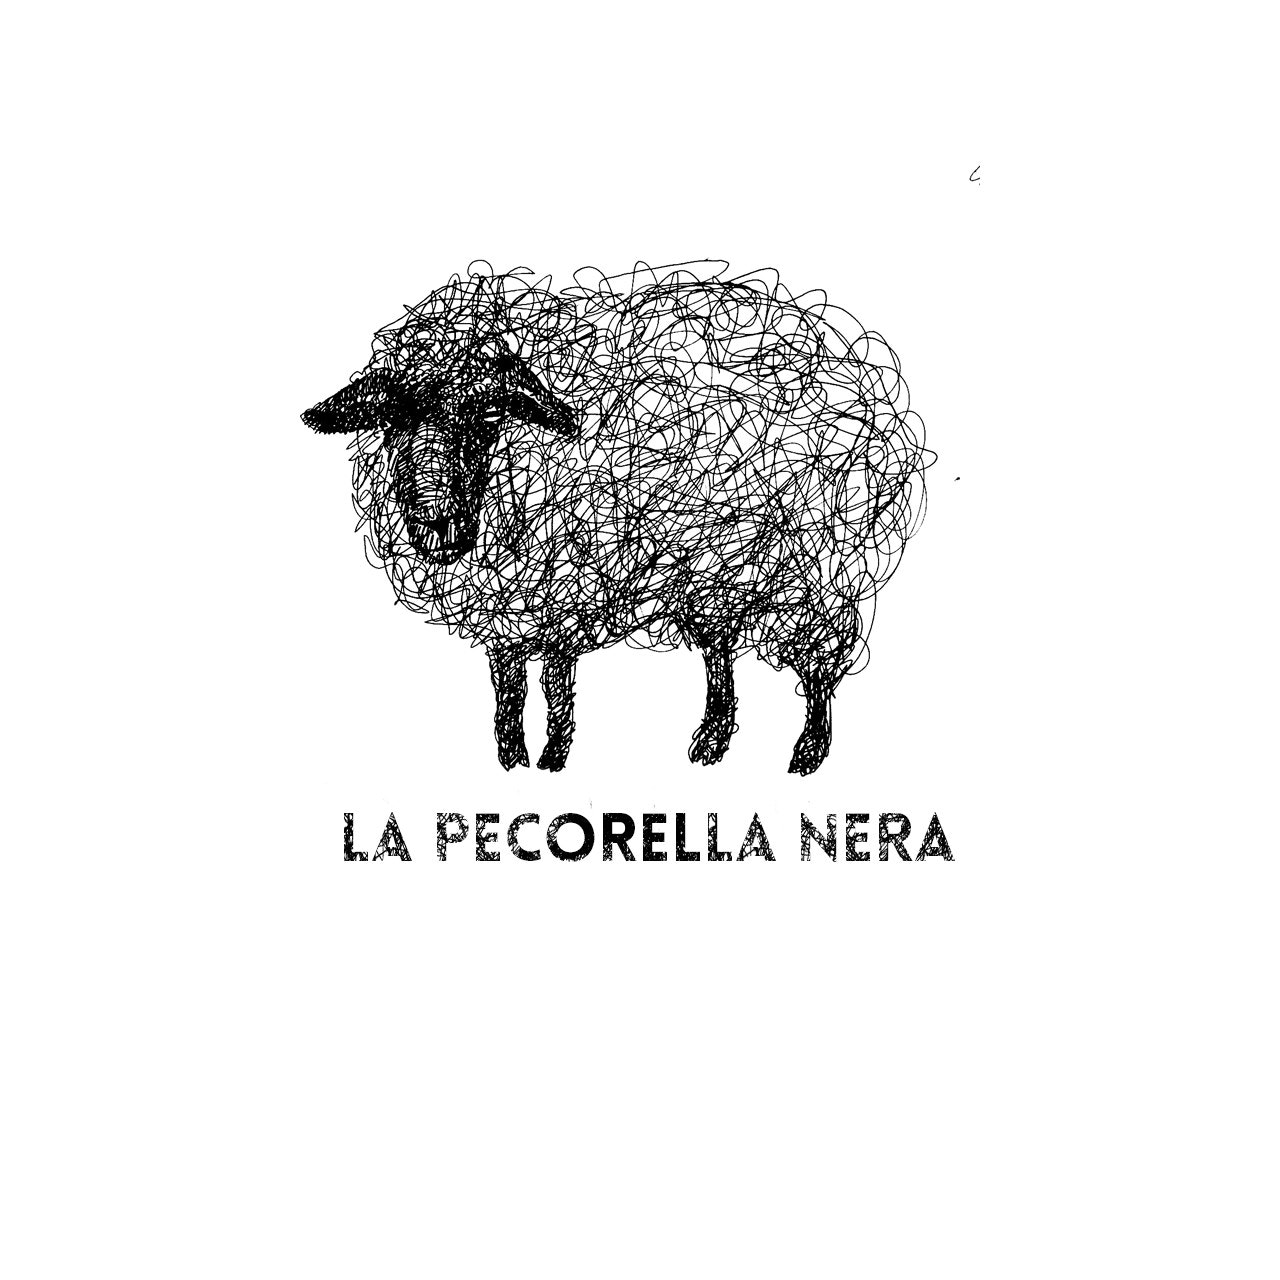 2012 logo design trends & complete logo maker: Logo of a sheep that looks like it was drawn in pen